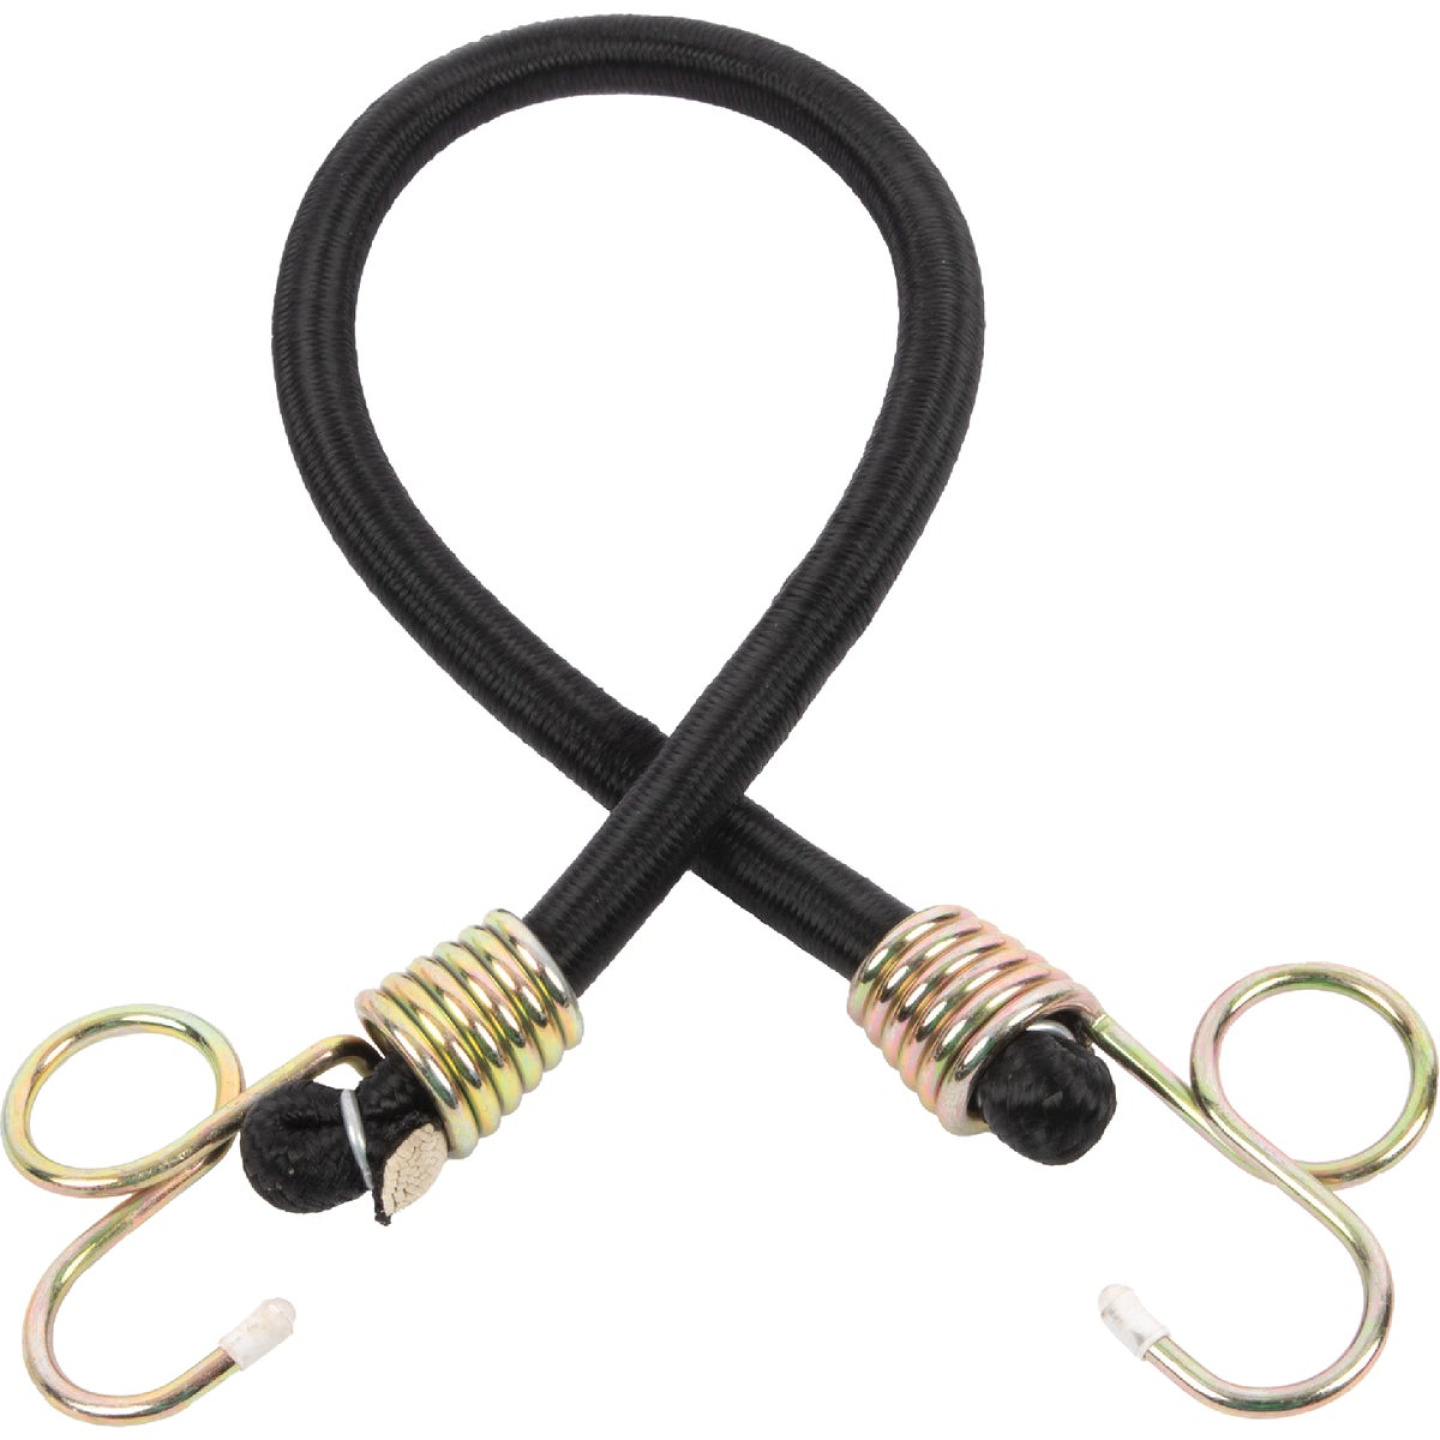 Erickson 1/2 In. x 24 In. Industrial Power Pull Bungee Cord, Black Image 1